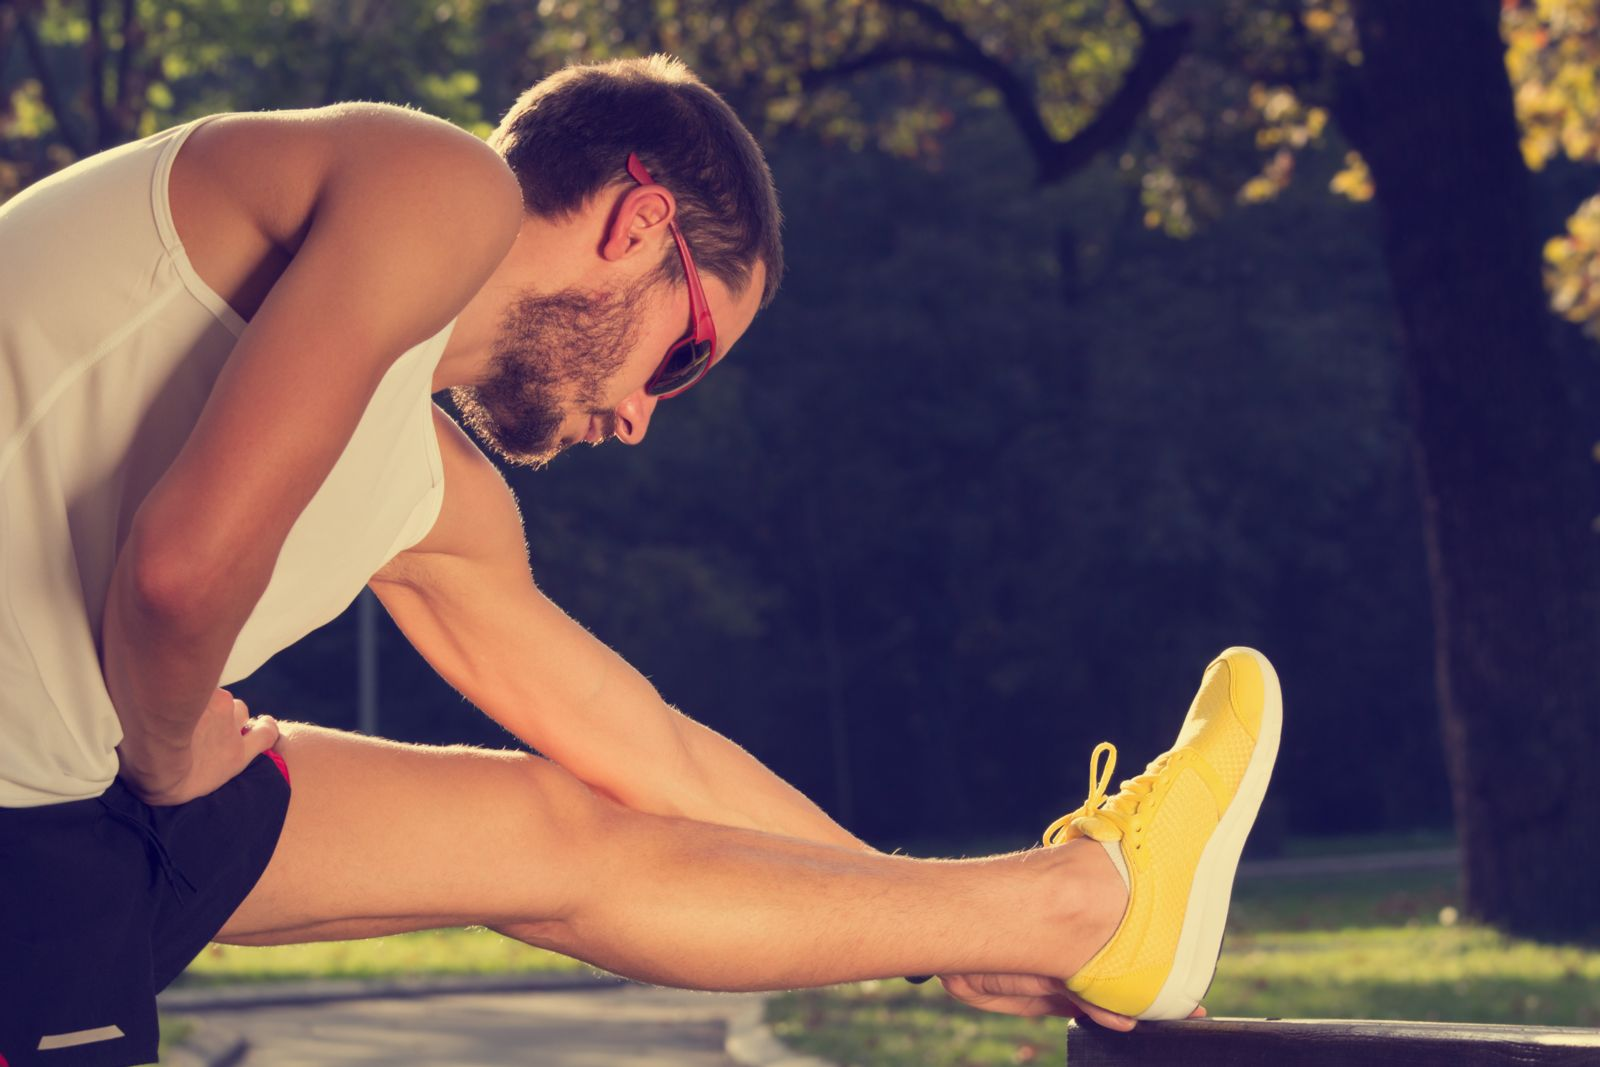 Precautions like stretching before and after a run can also help prevent injuries